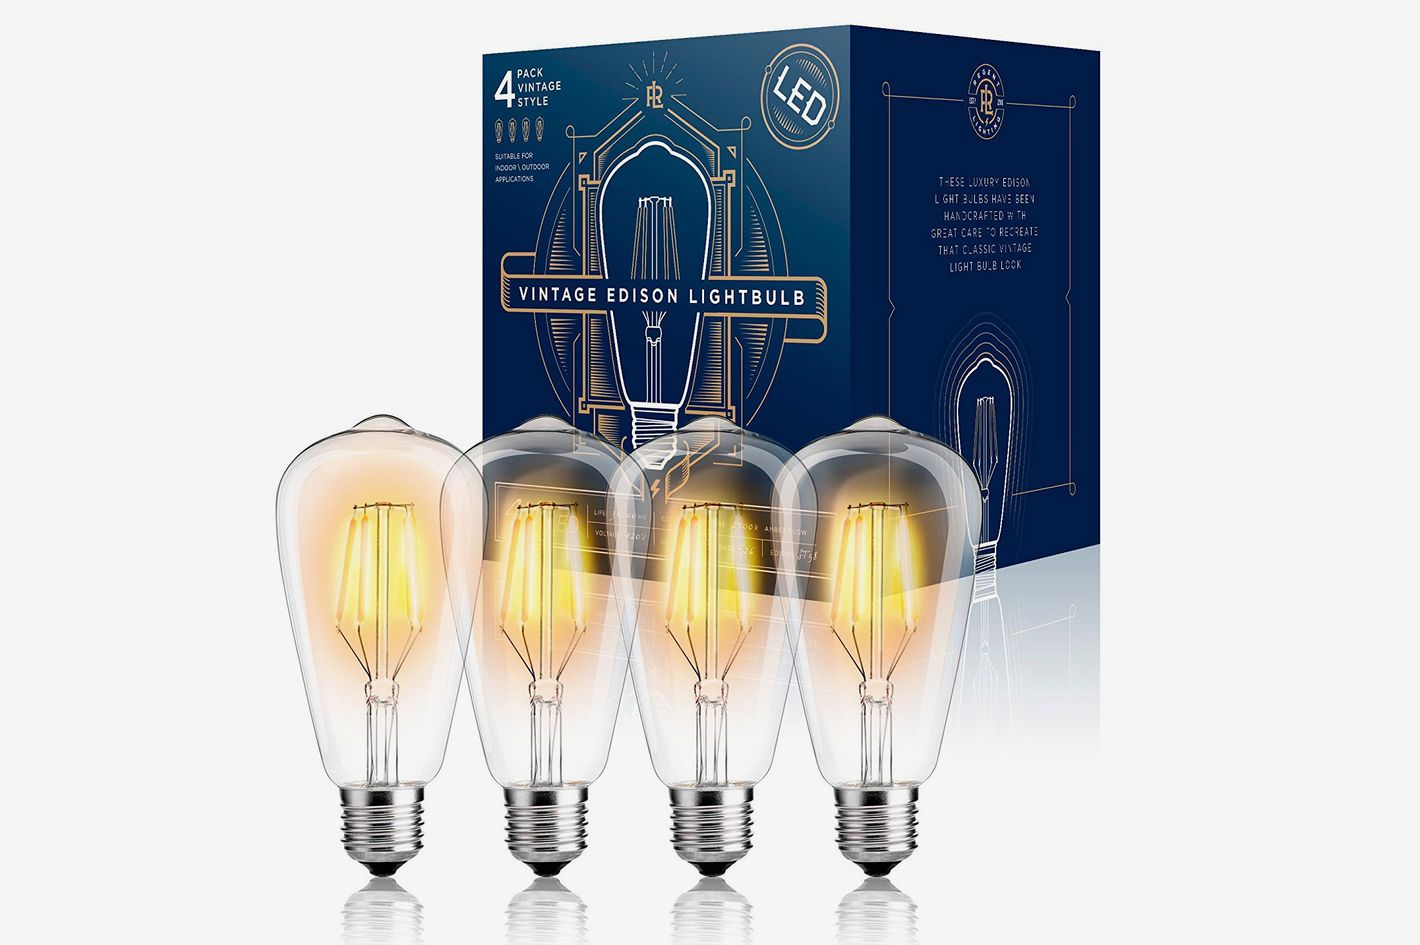 Gordon & Bond Filament Edison Dimmable LED Light Bulb (4 Pack)